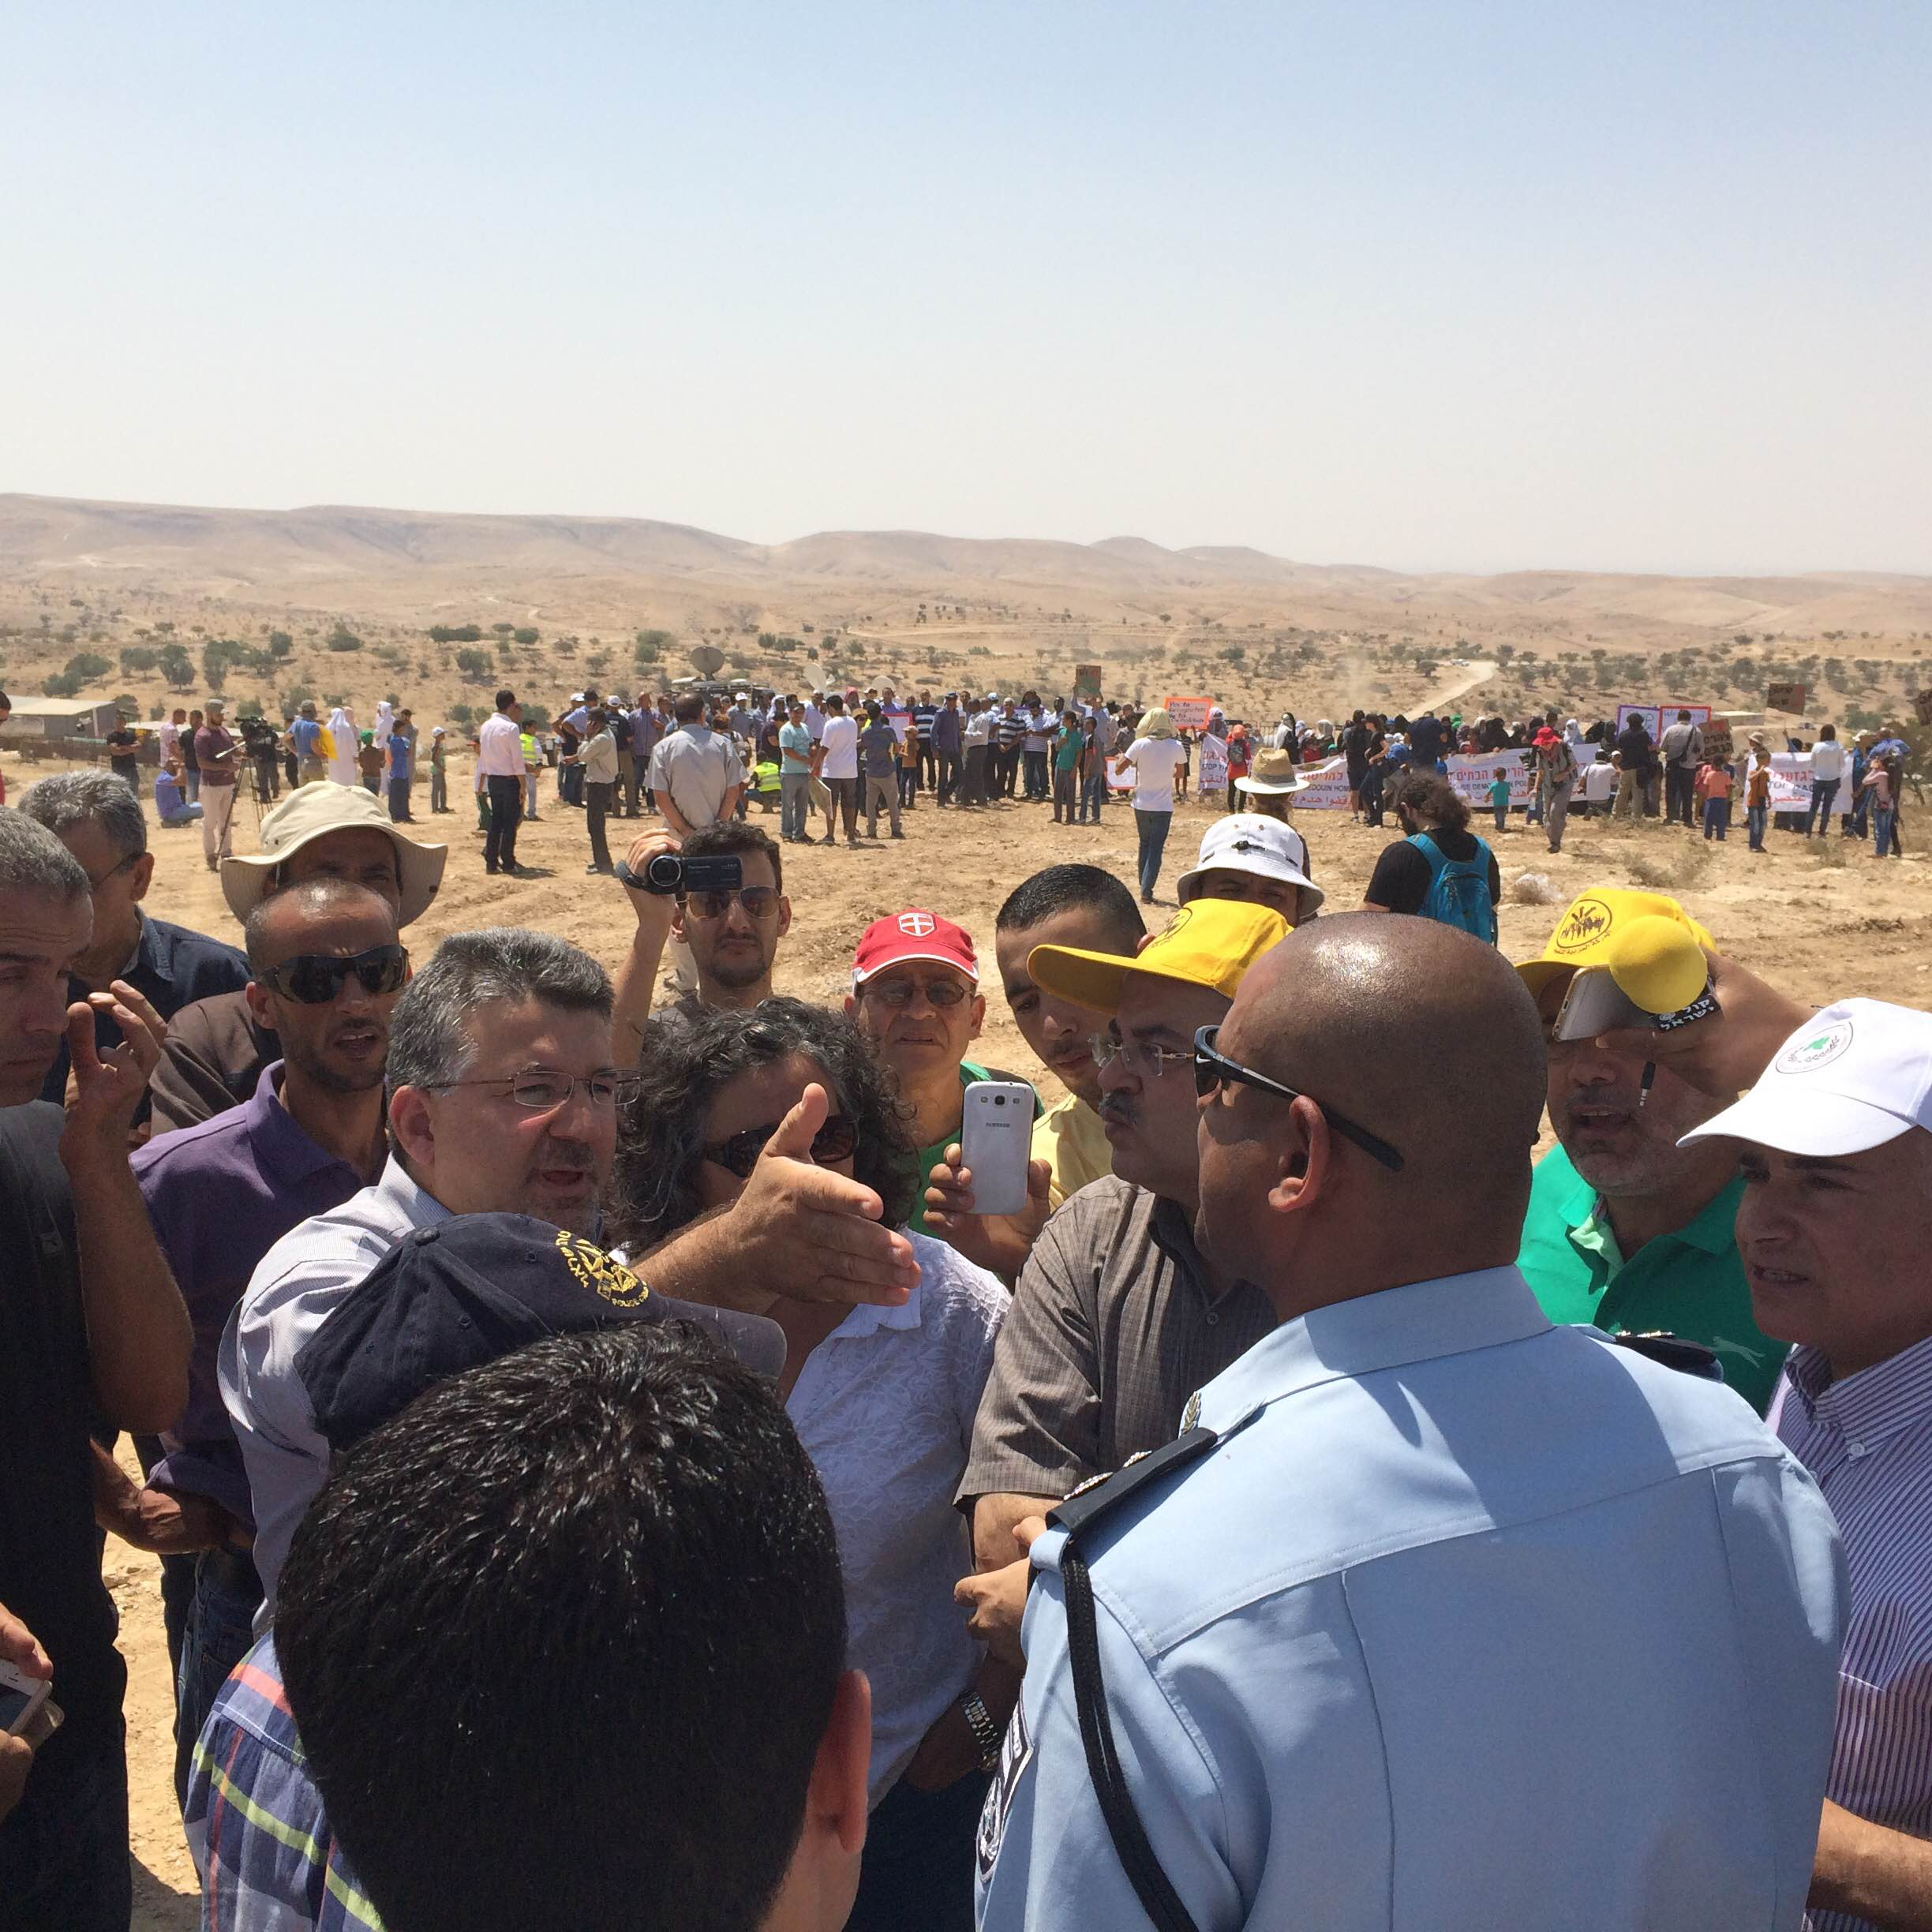 Protesters march as construction begins for Jewish town to  replace Bedouin village. August 27, 2015 (Amjad Iraqi)